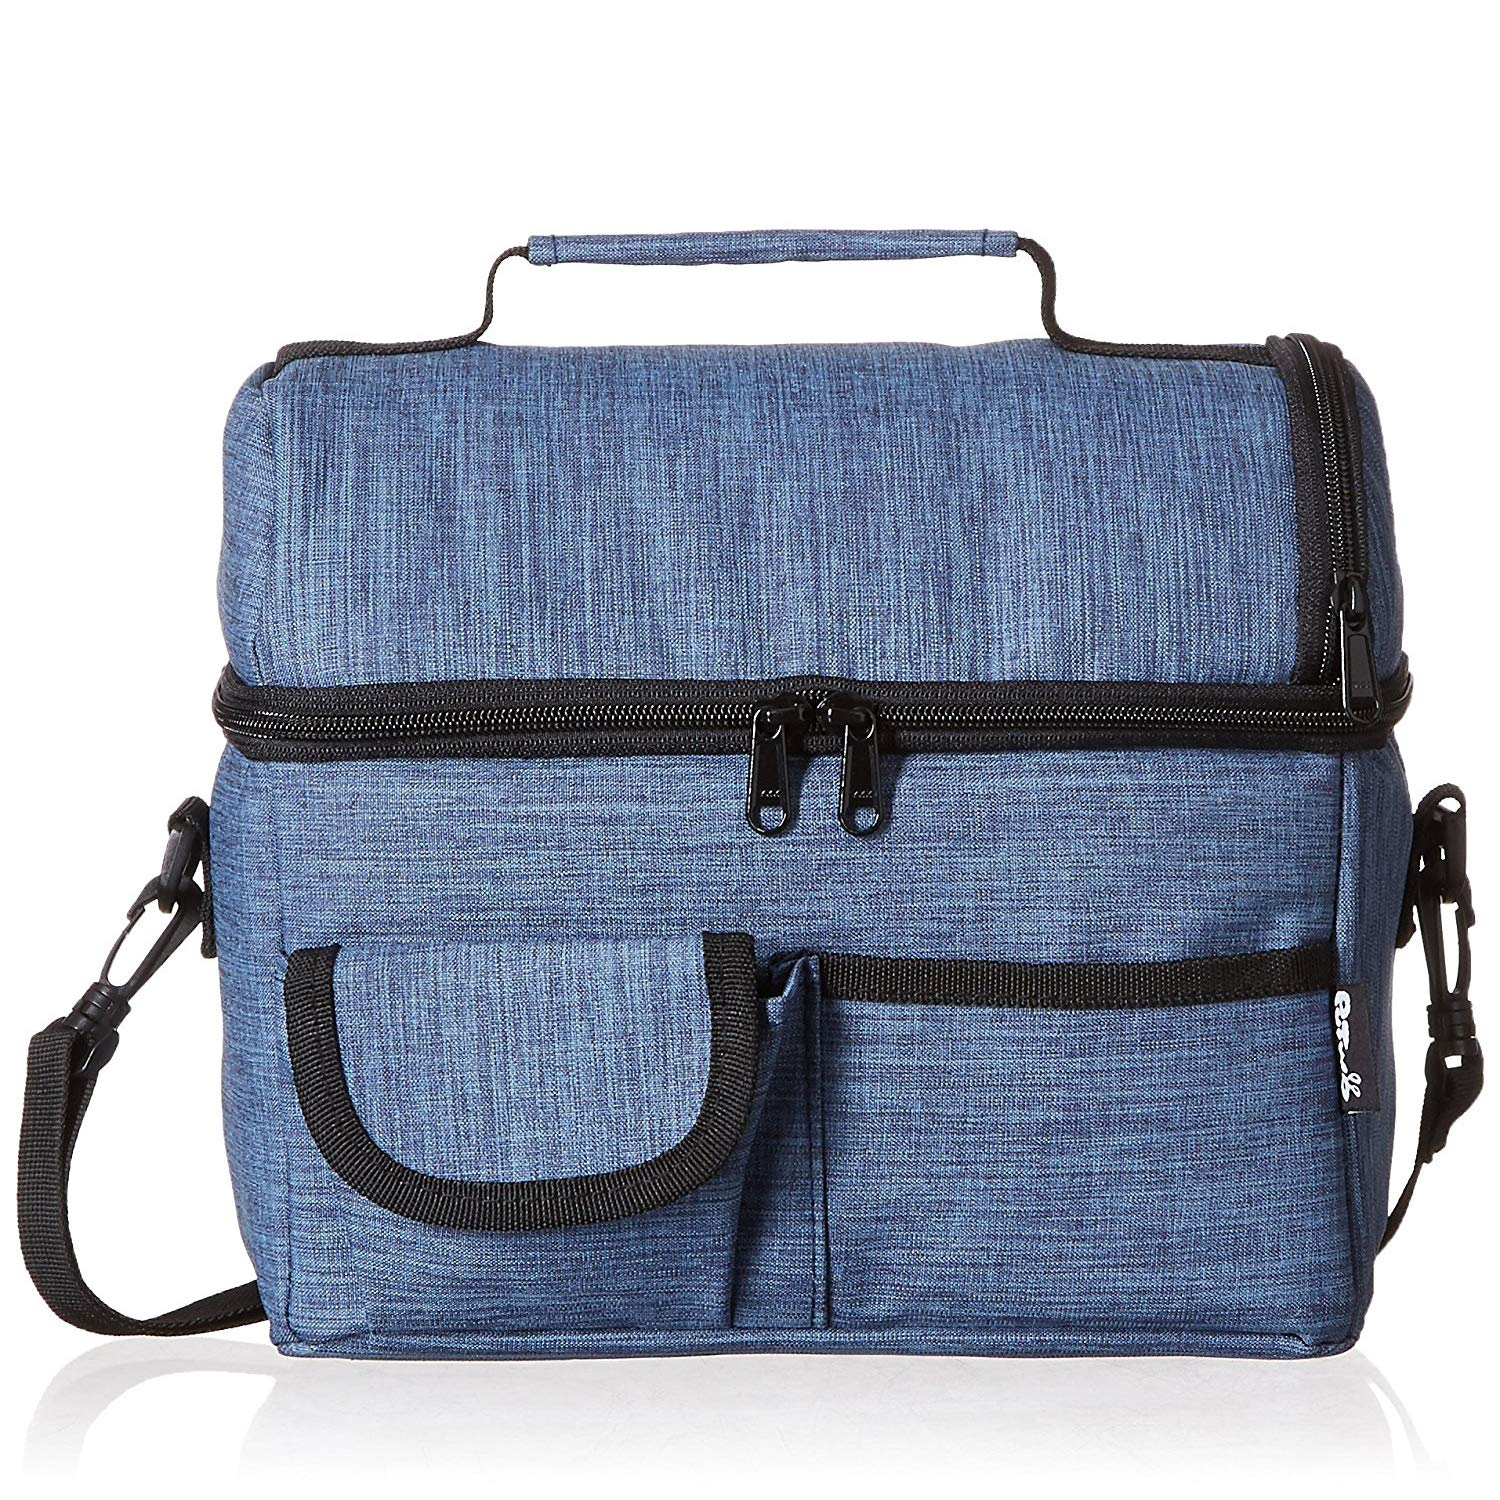 PuTwo Lunch Bag 8L Insulated Lunch Bag Lunch Box Lunch Bags for Women Lunch  Bag for Men Cooler Bag with YKK Zip and Adjustable Shoulder Strap Lunch Tote  for ... 84319418e